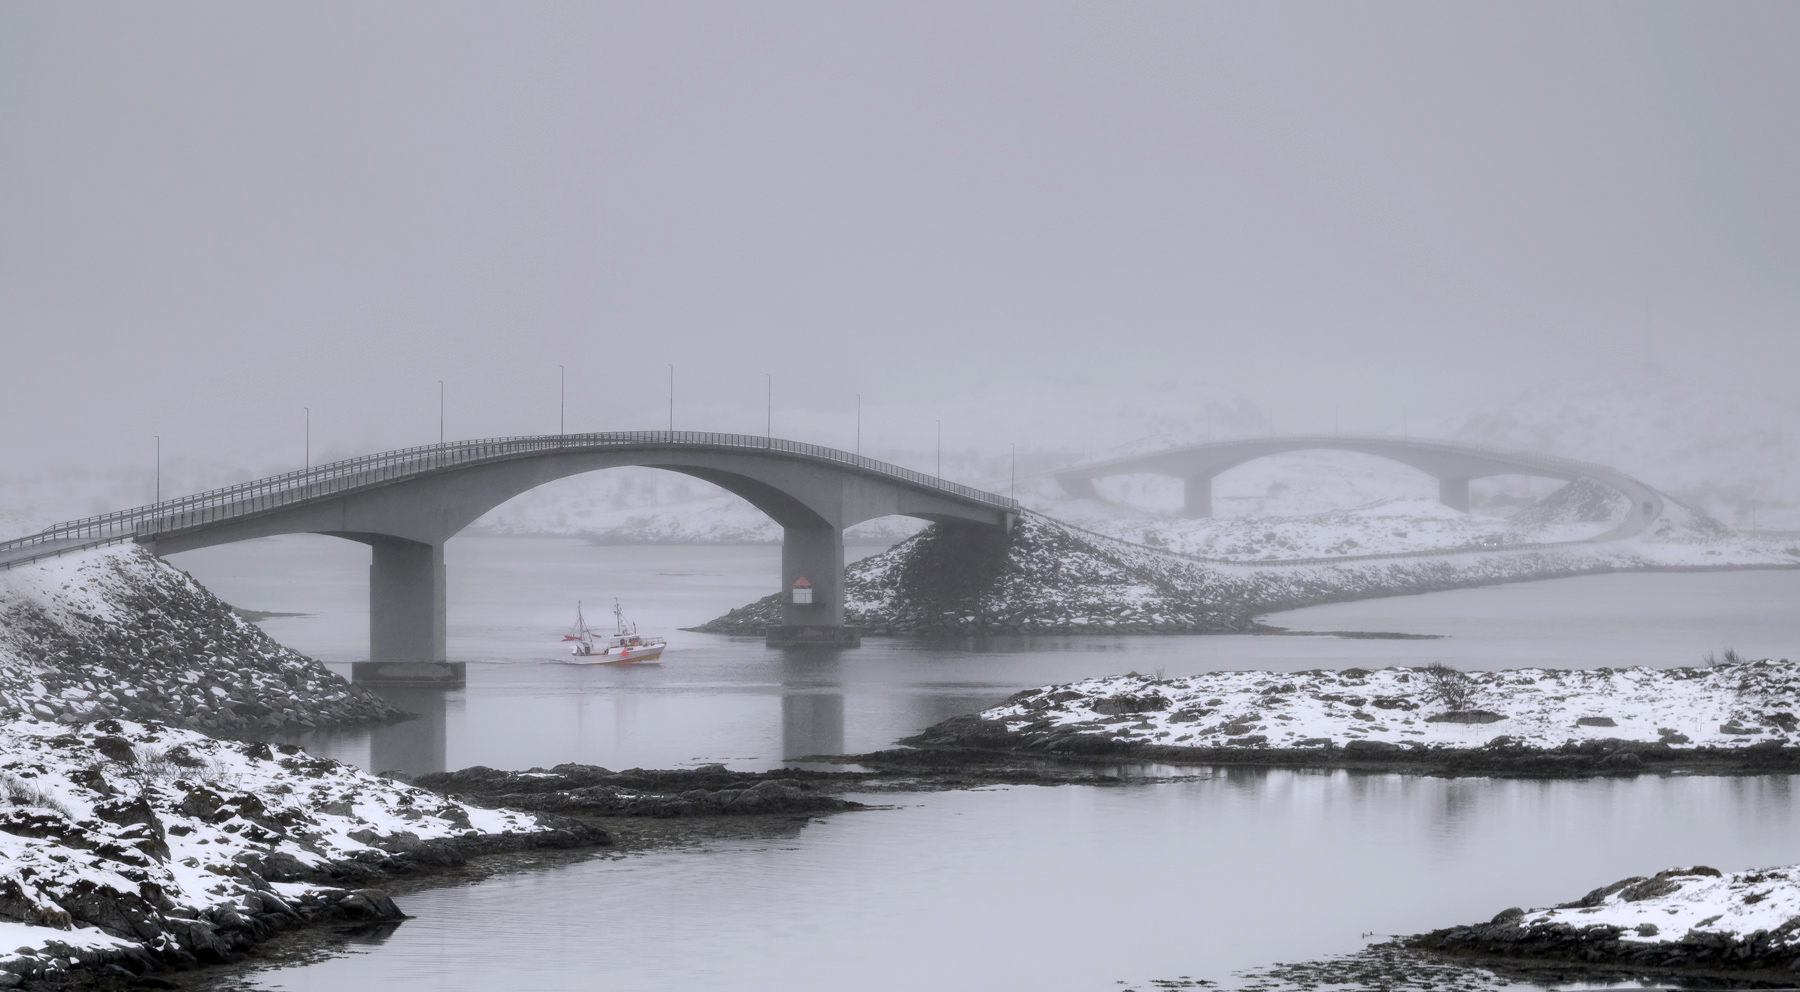 Selfjord Twinned Elegance, Selfjord, Lofoten, Norway, bridges, splendour, quiet, understated, sartorial, mist, fishing, , photo